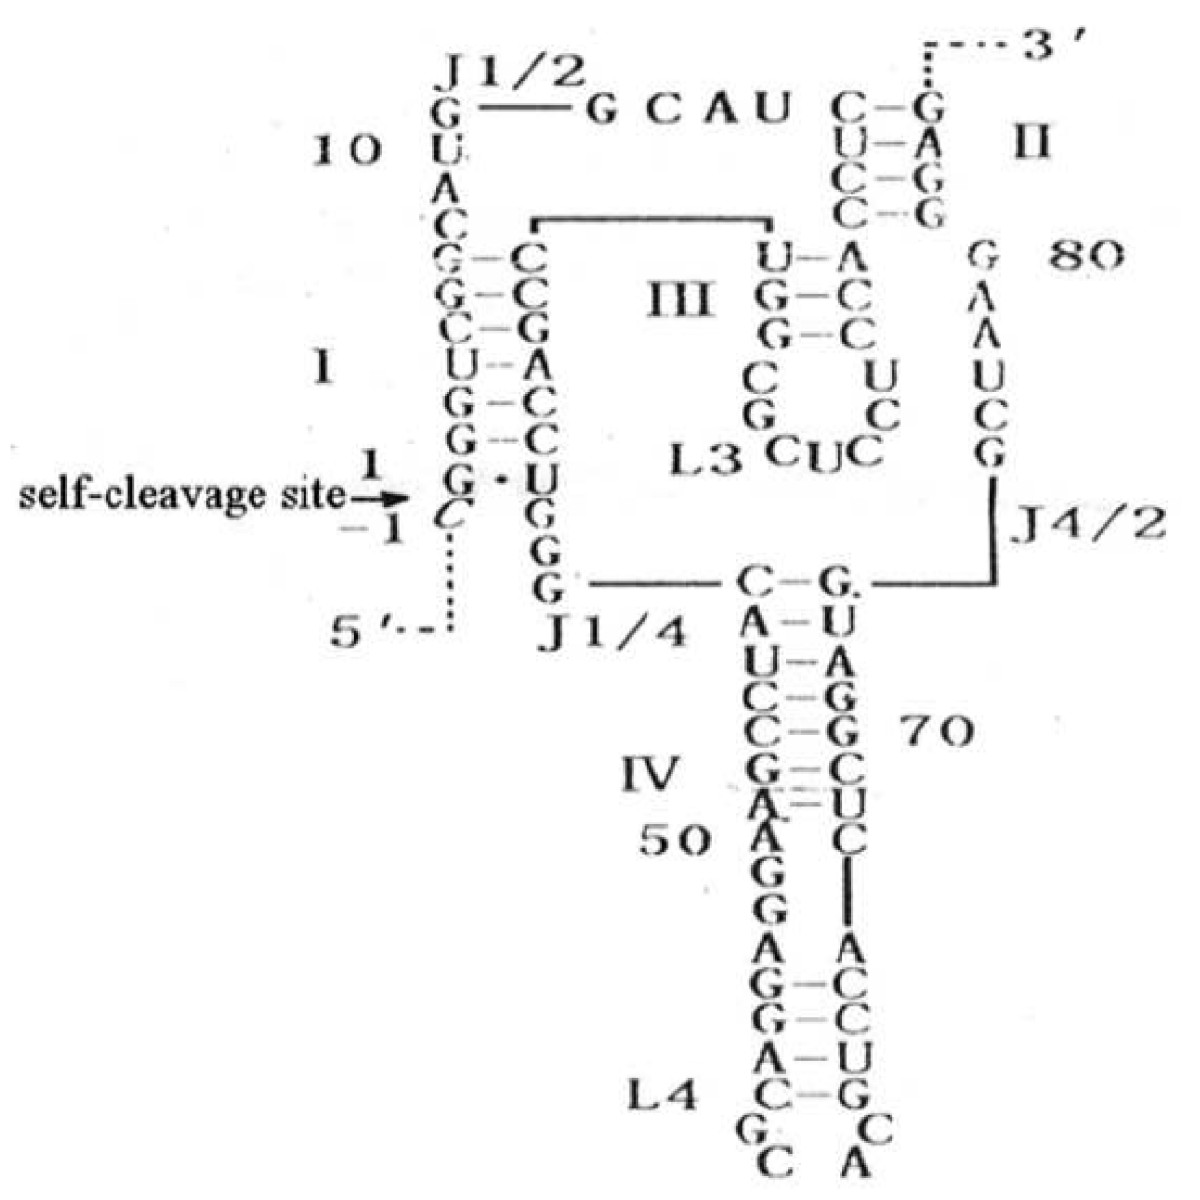 https://static-content.springer.com/image/art%3A10.1186%2F1756-9966-30-1/MediaObjects/13046_2010_Article_421_Fig1_HTML.jpg